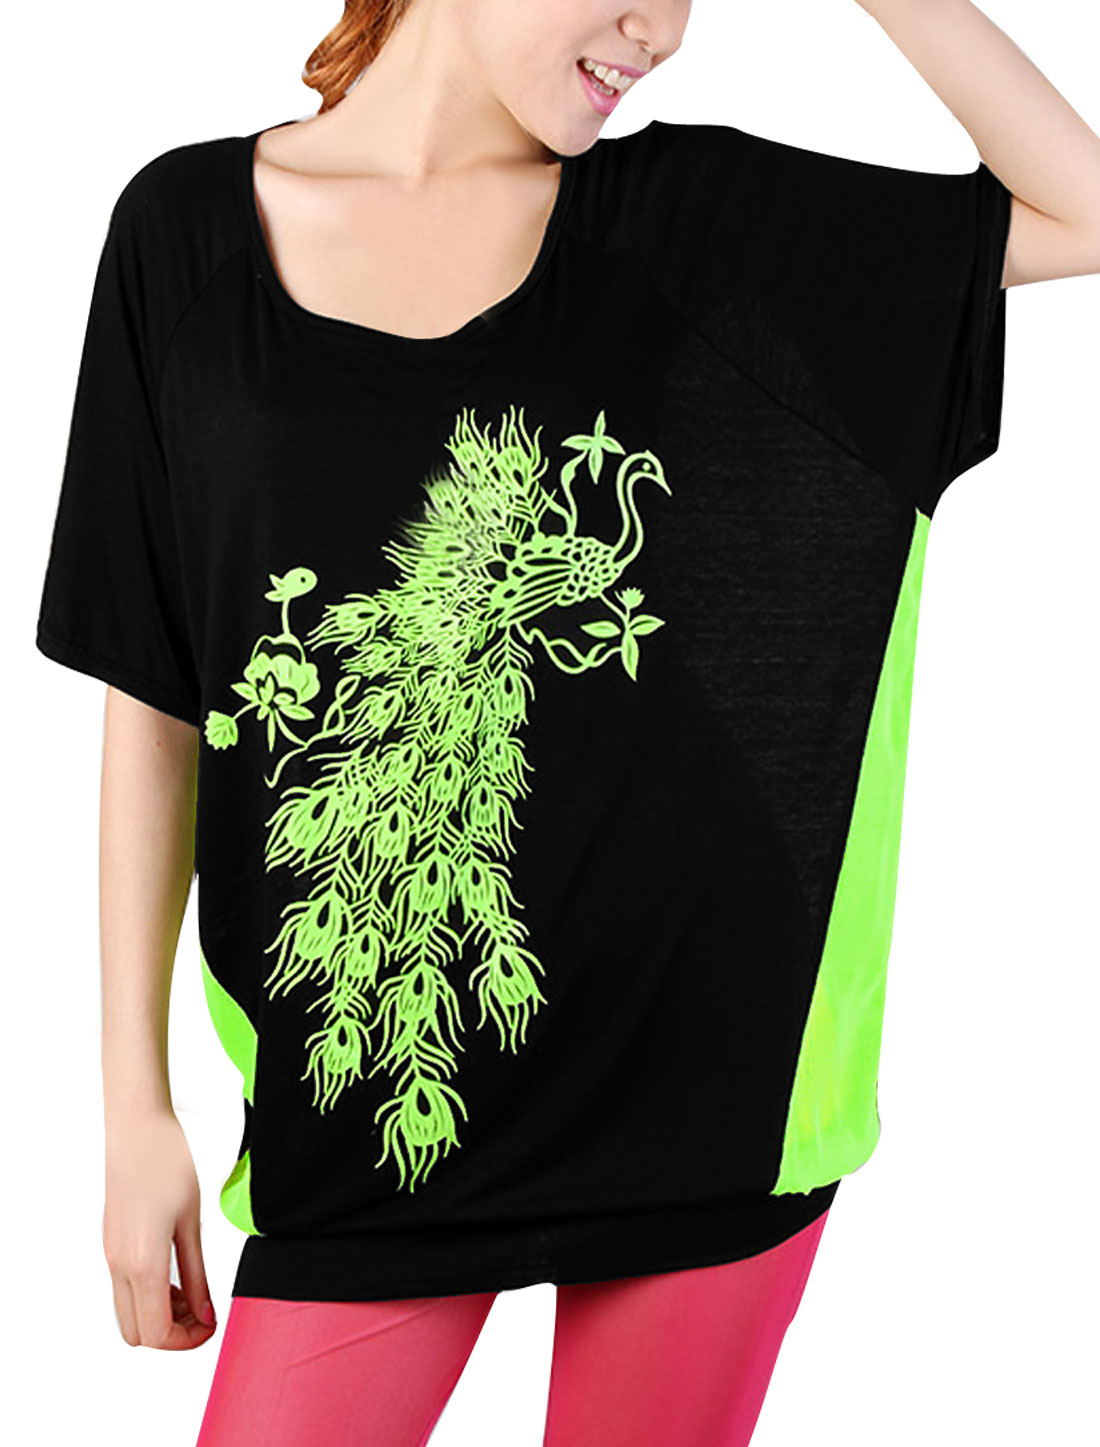 Women Semi-Sheer Back Design Peacock Pattern Bright Green Black Top Shirt M